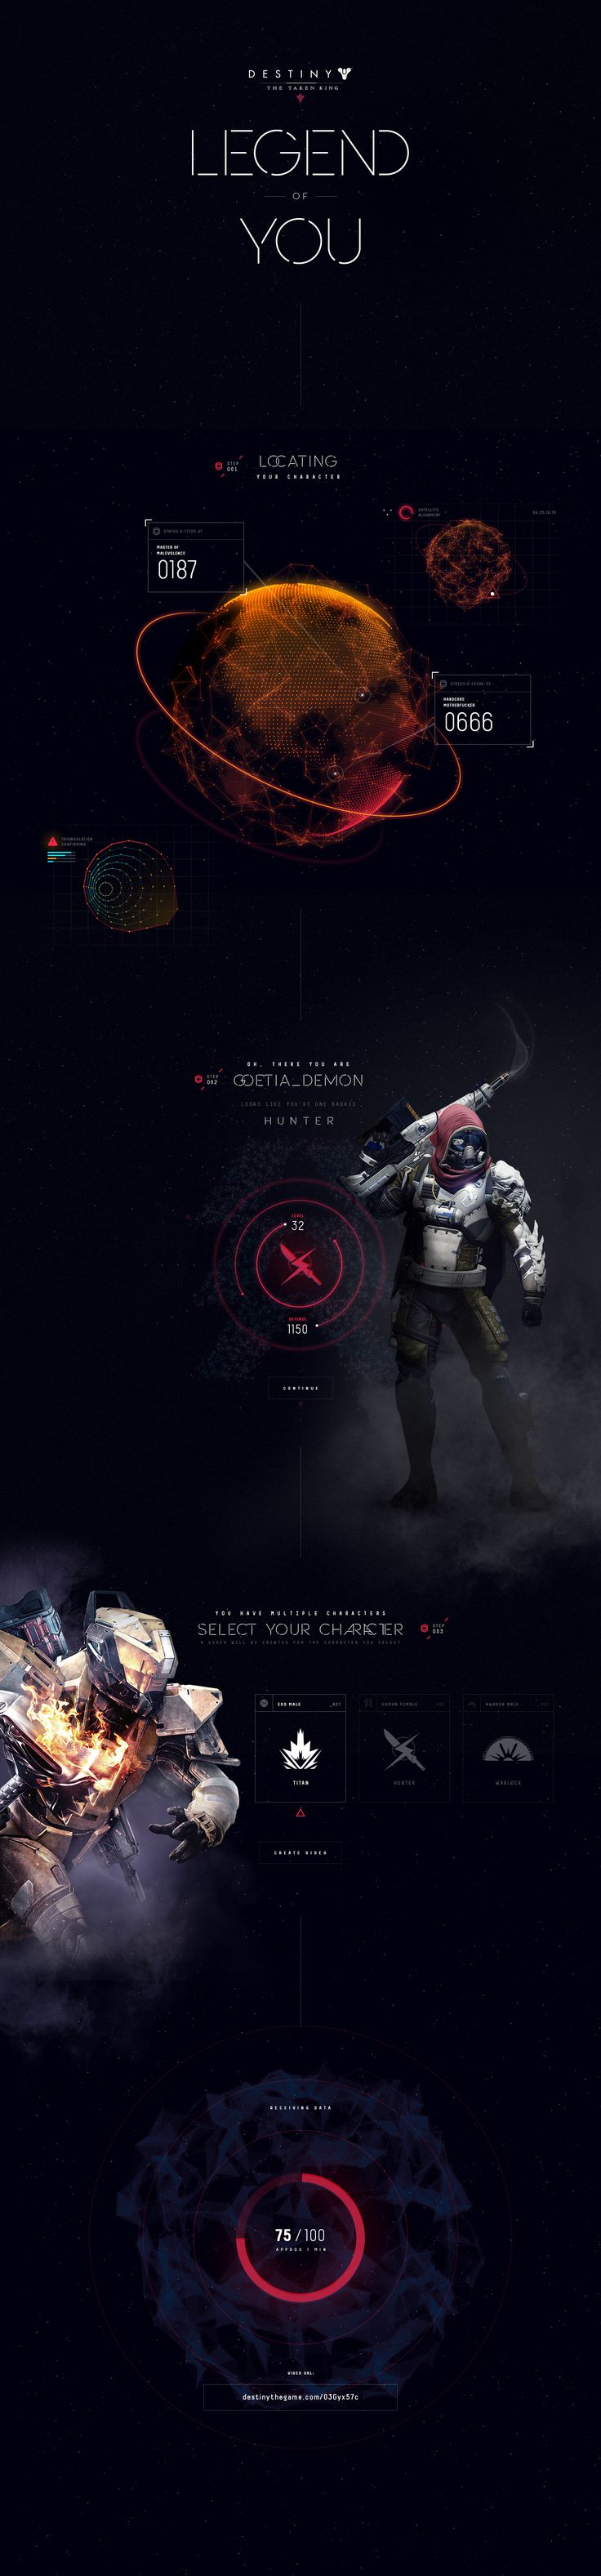 Destiny: Legend of You on Behance